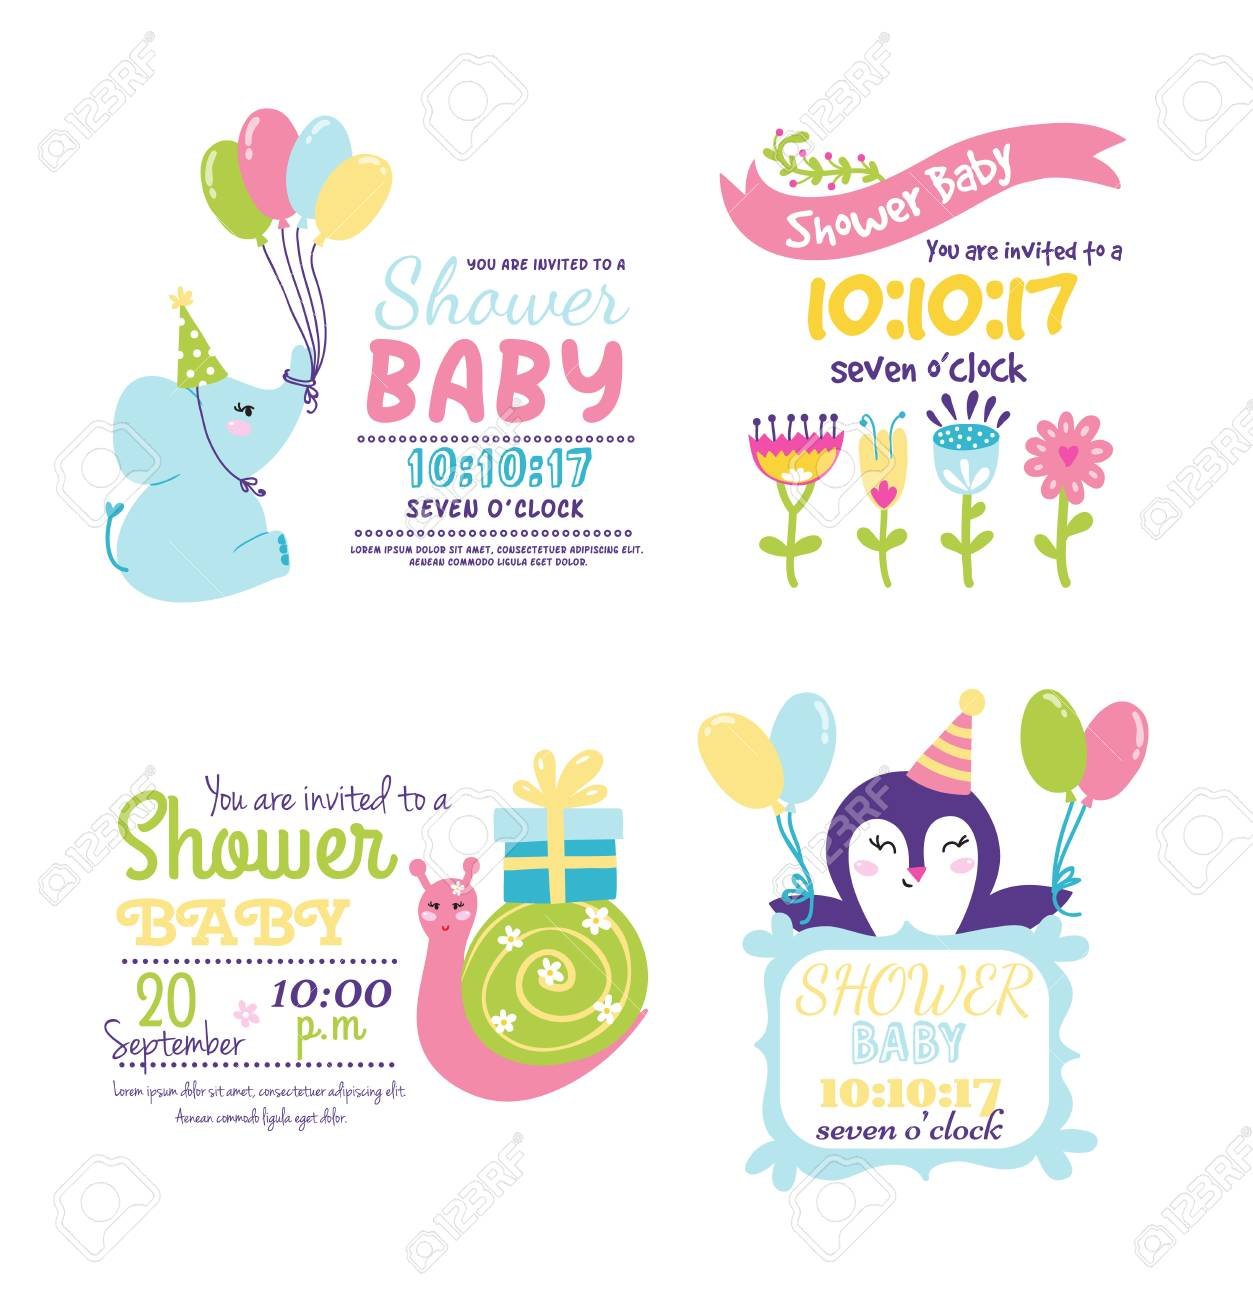 Baby shower invitation card vector graphic party template vintage baby shower invitation card vector graphic party template vintage cute birth baby shower invitation stopboris Gallery